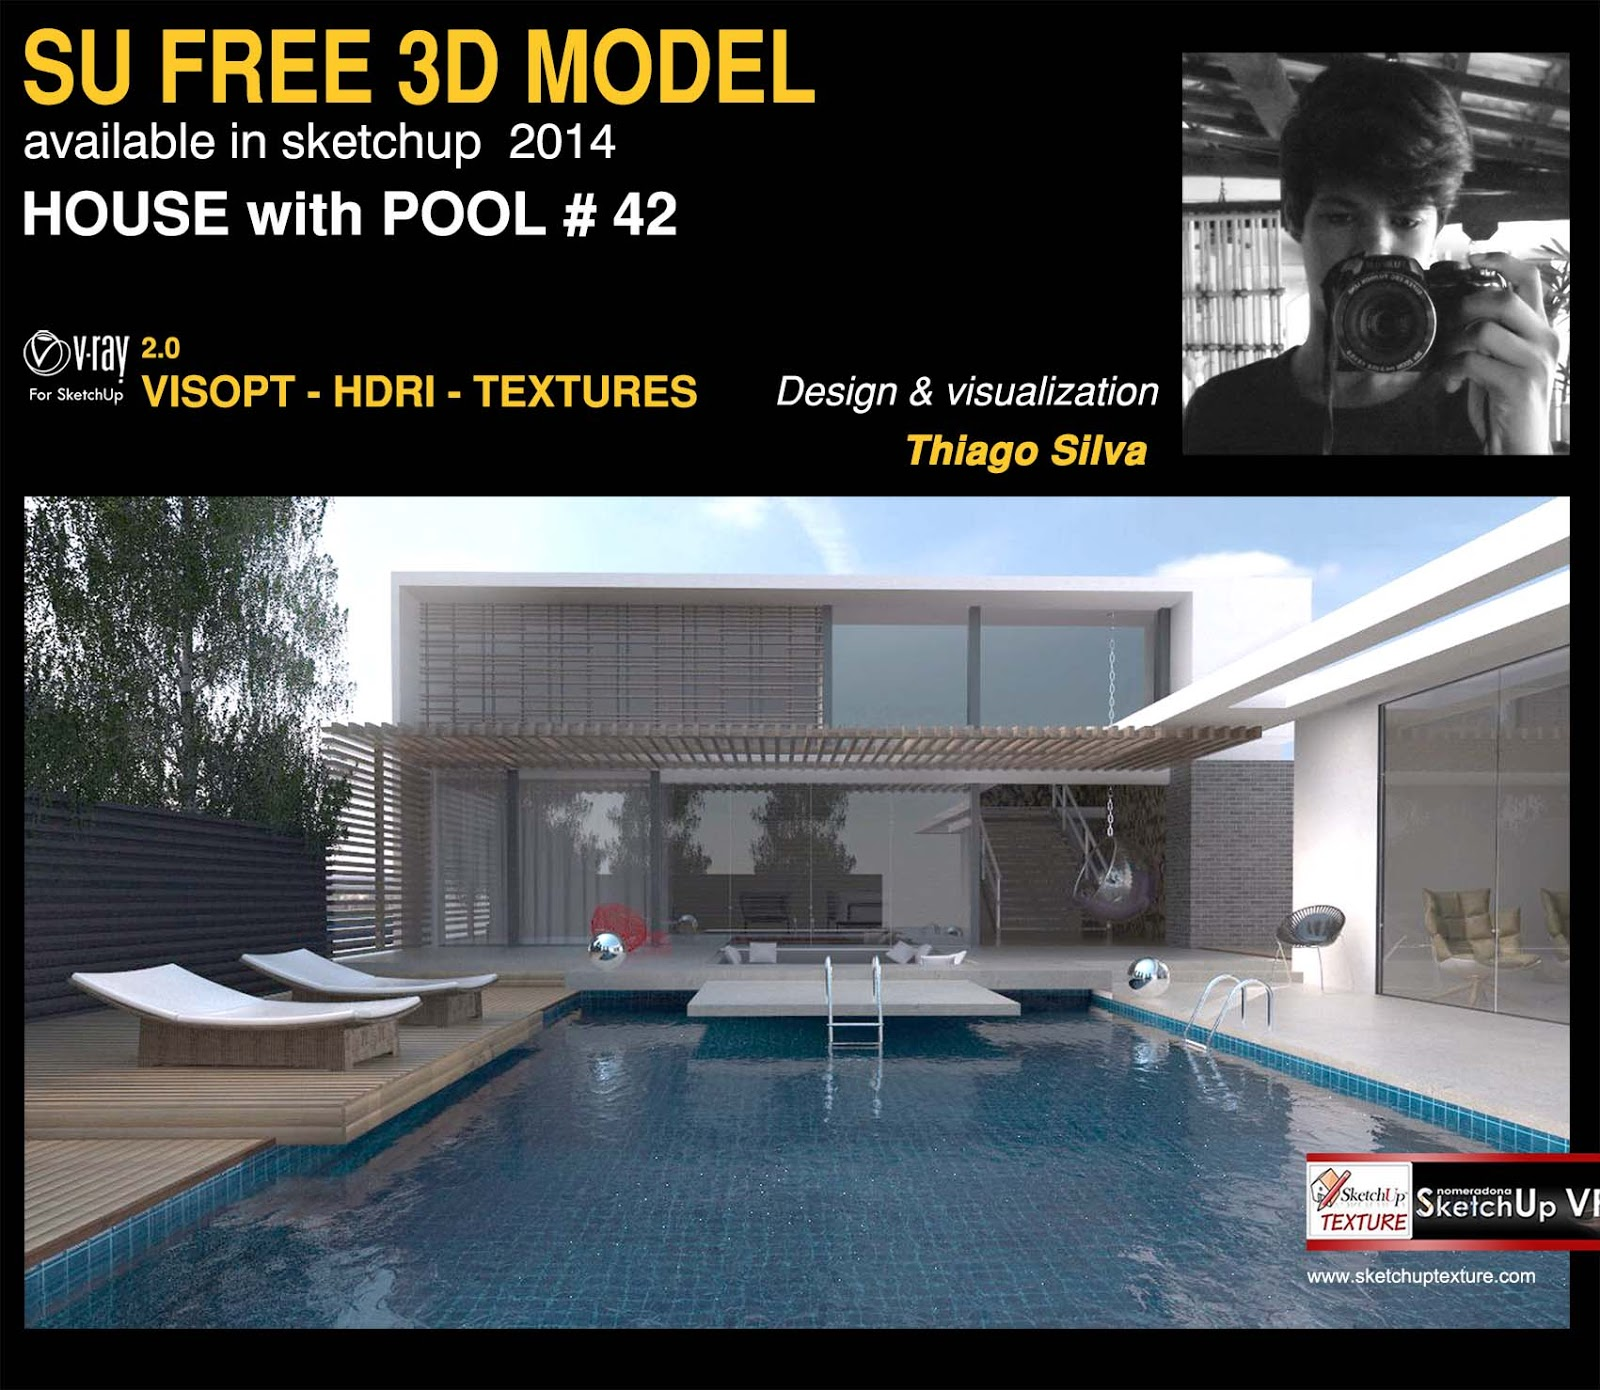 SKETCHUP TEXTURE: Free sketchup 3d model house with pool #42